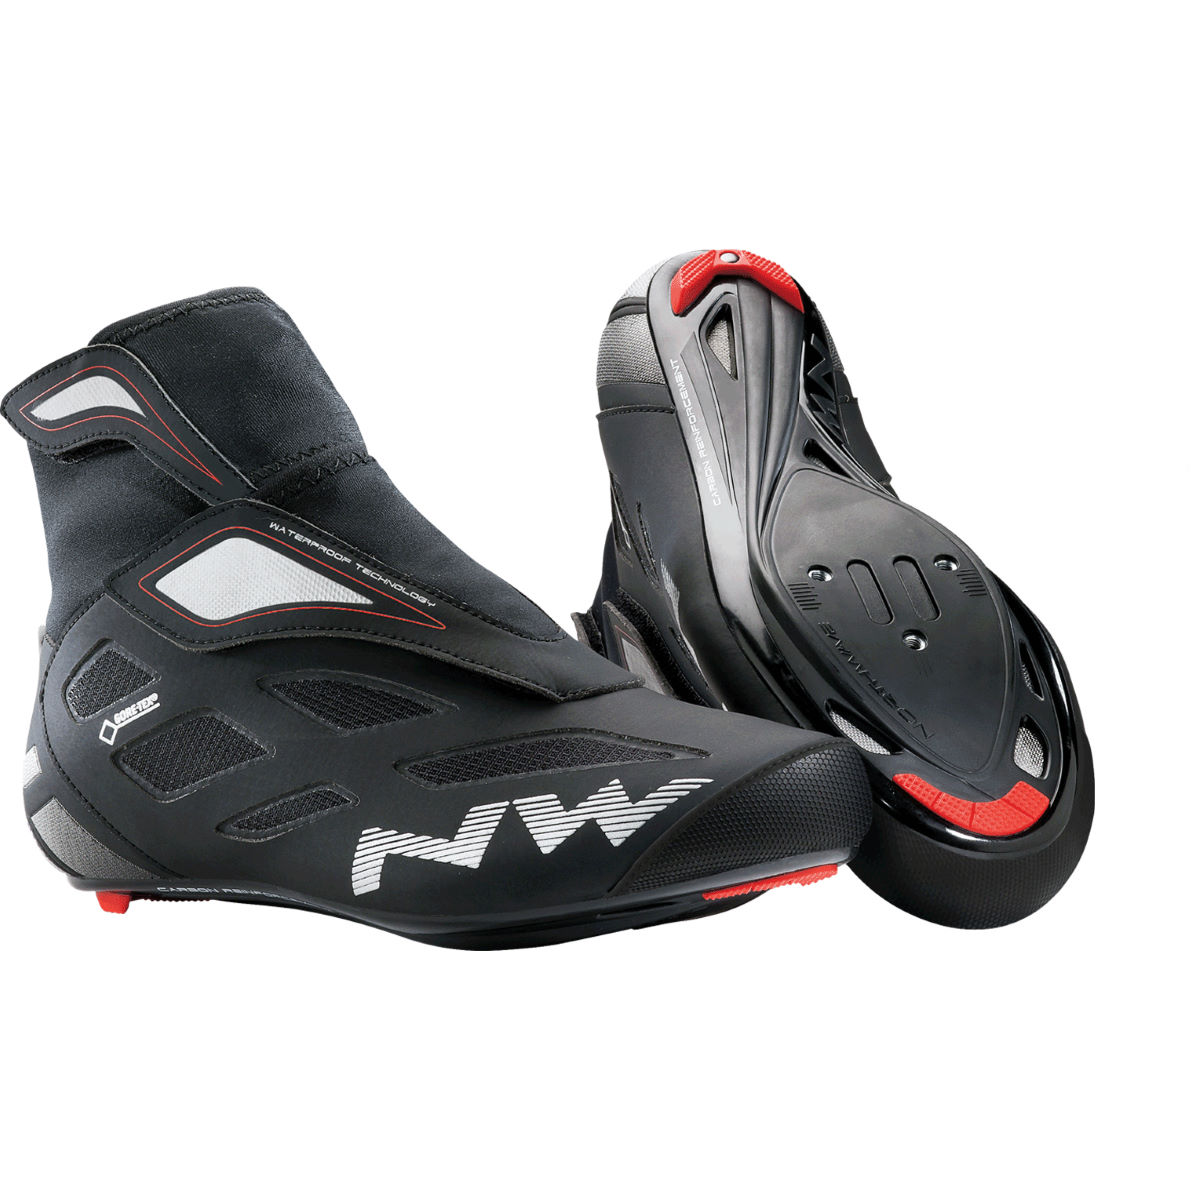 Northwave Fahrenheit 2 GTX Winter Road Shoes   Road Shoes